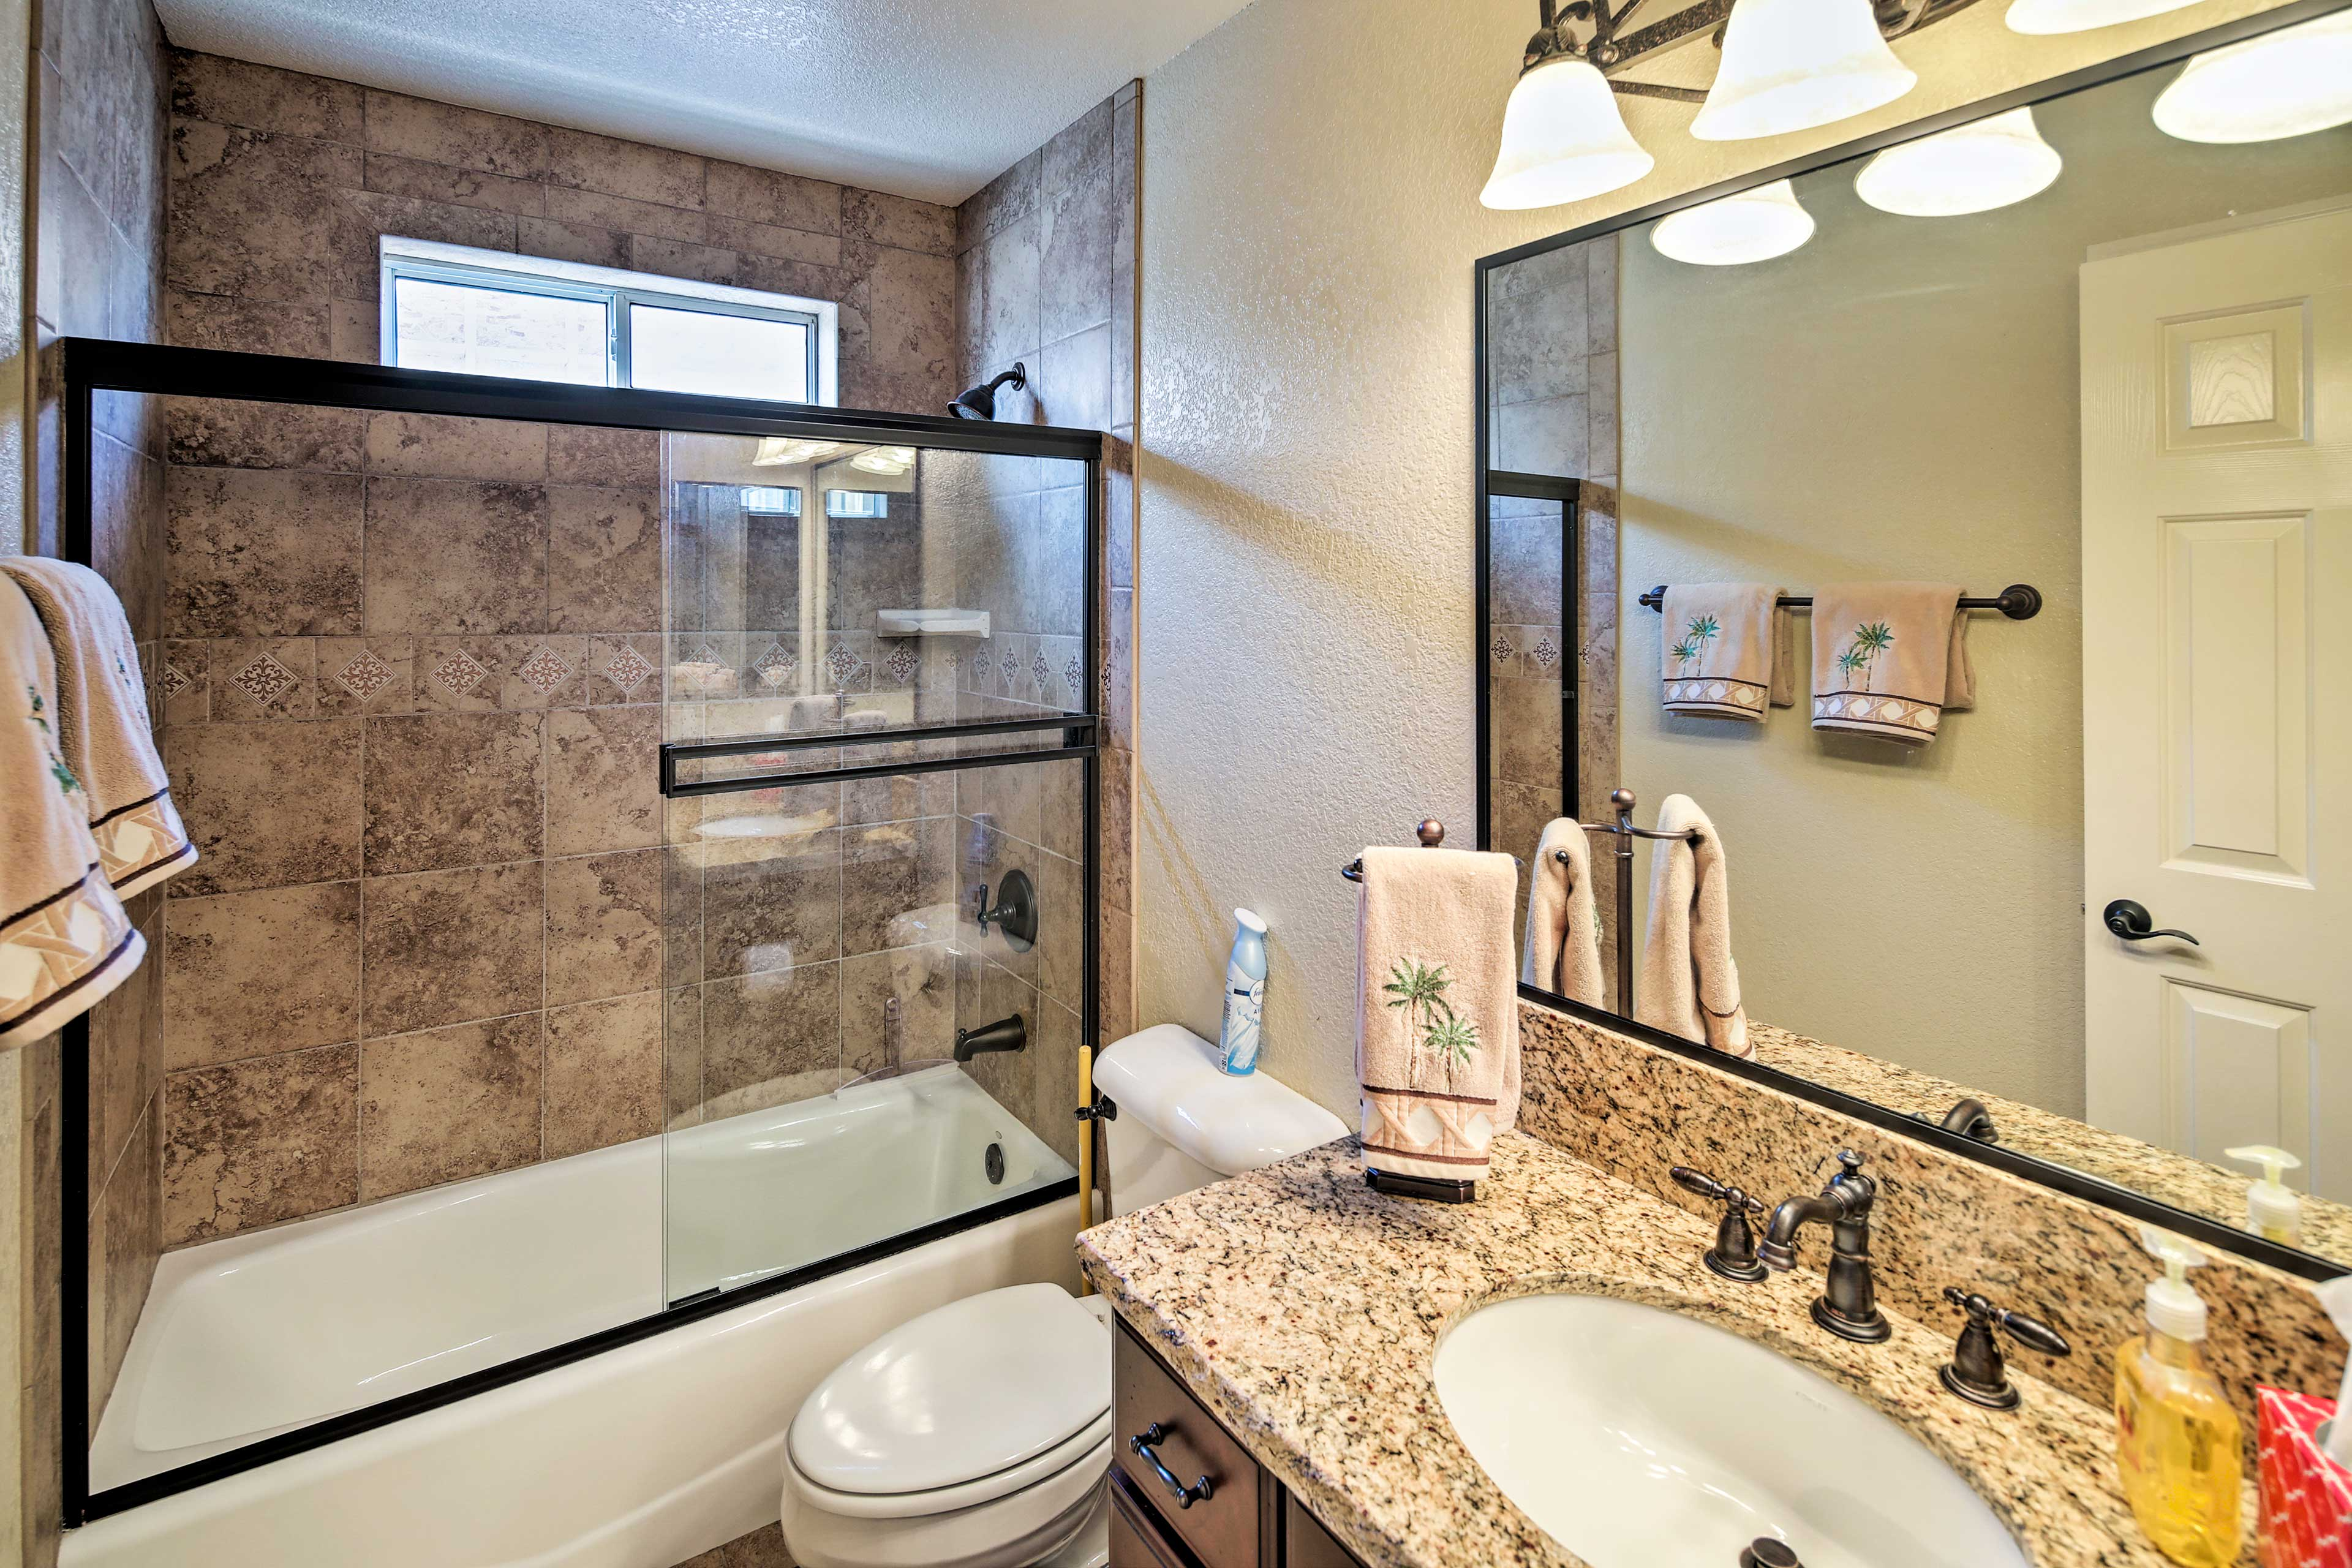 The home includes 2 full bathrooms.